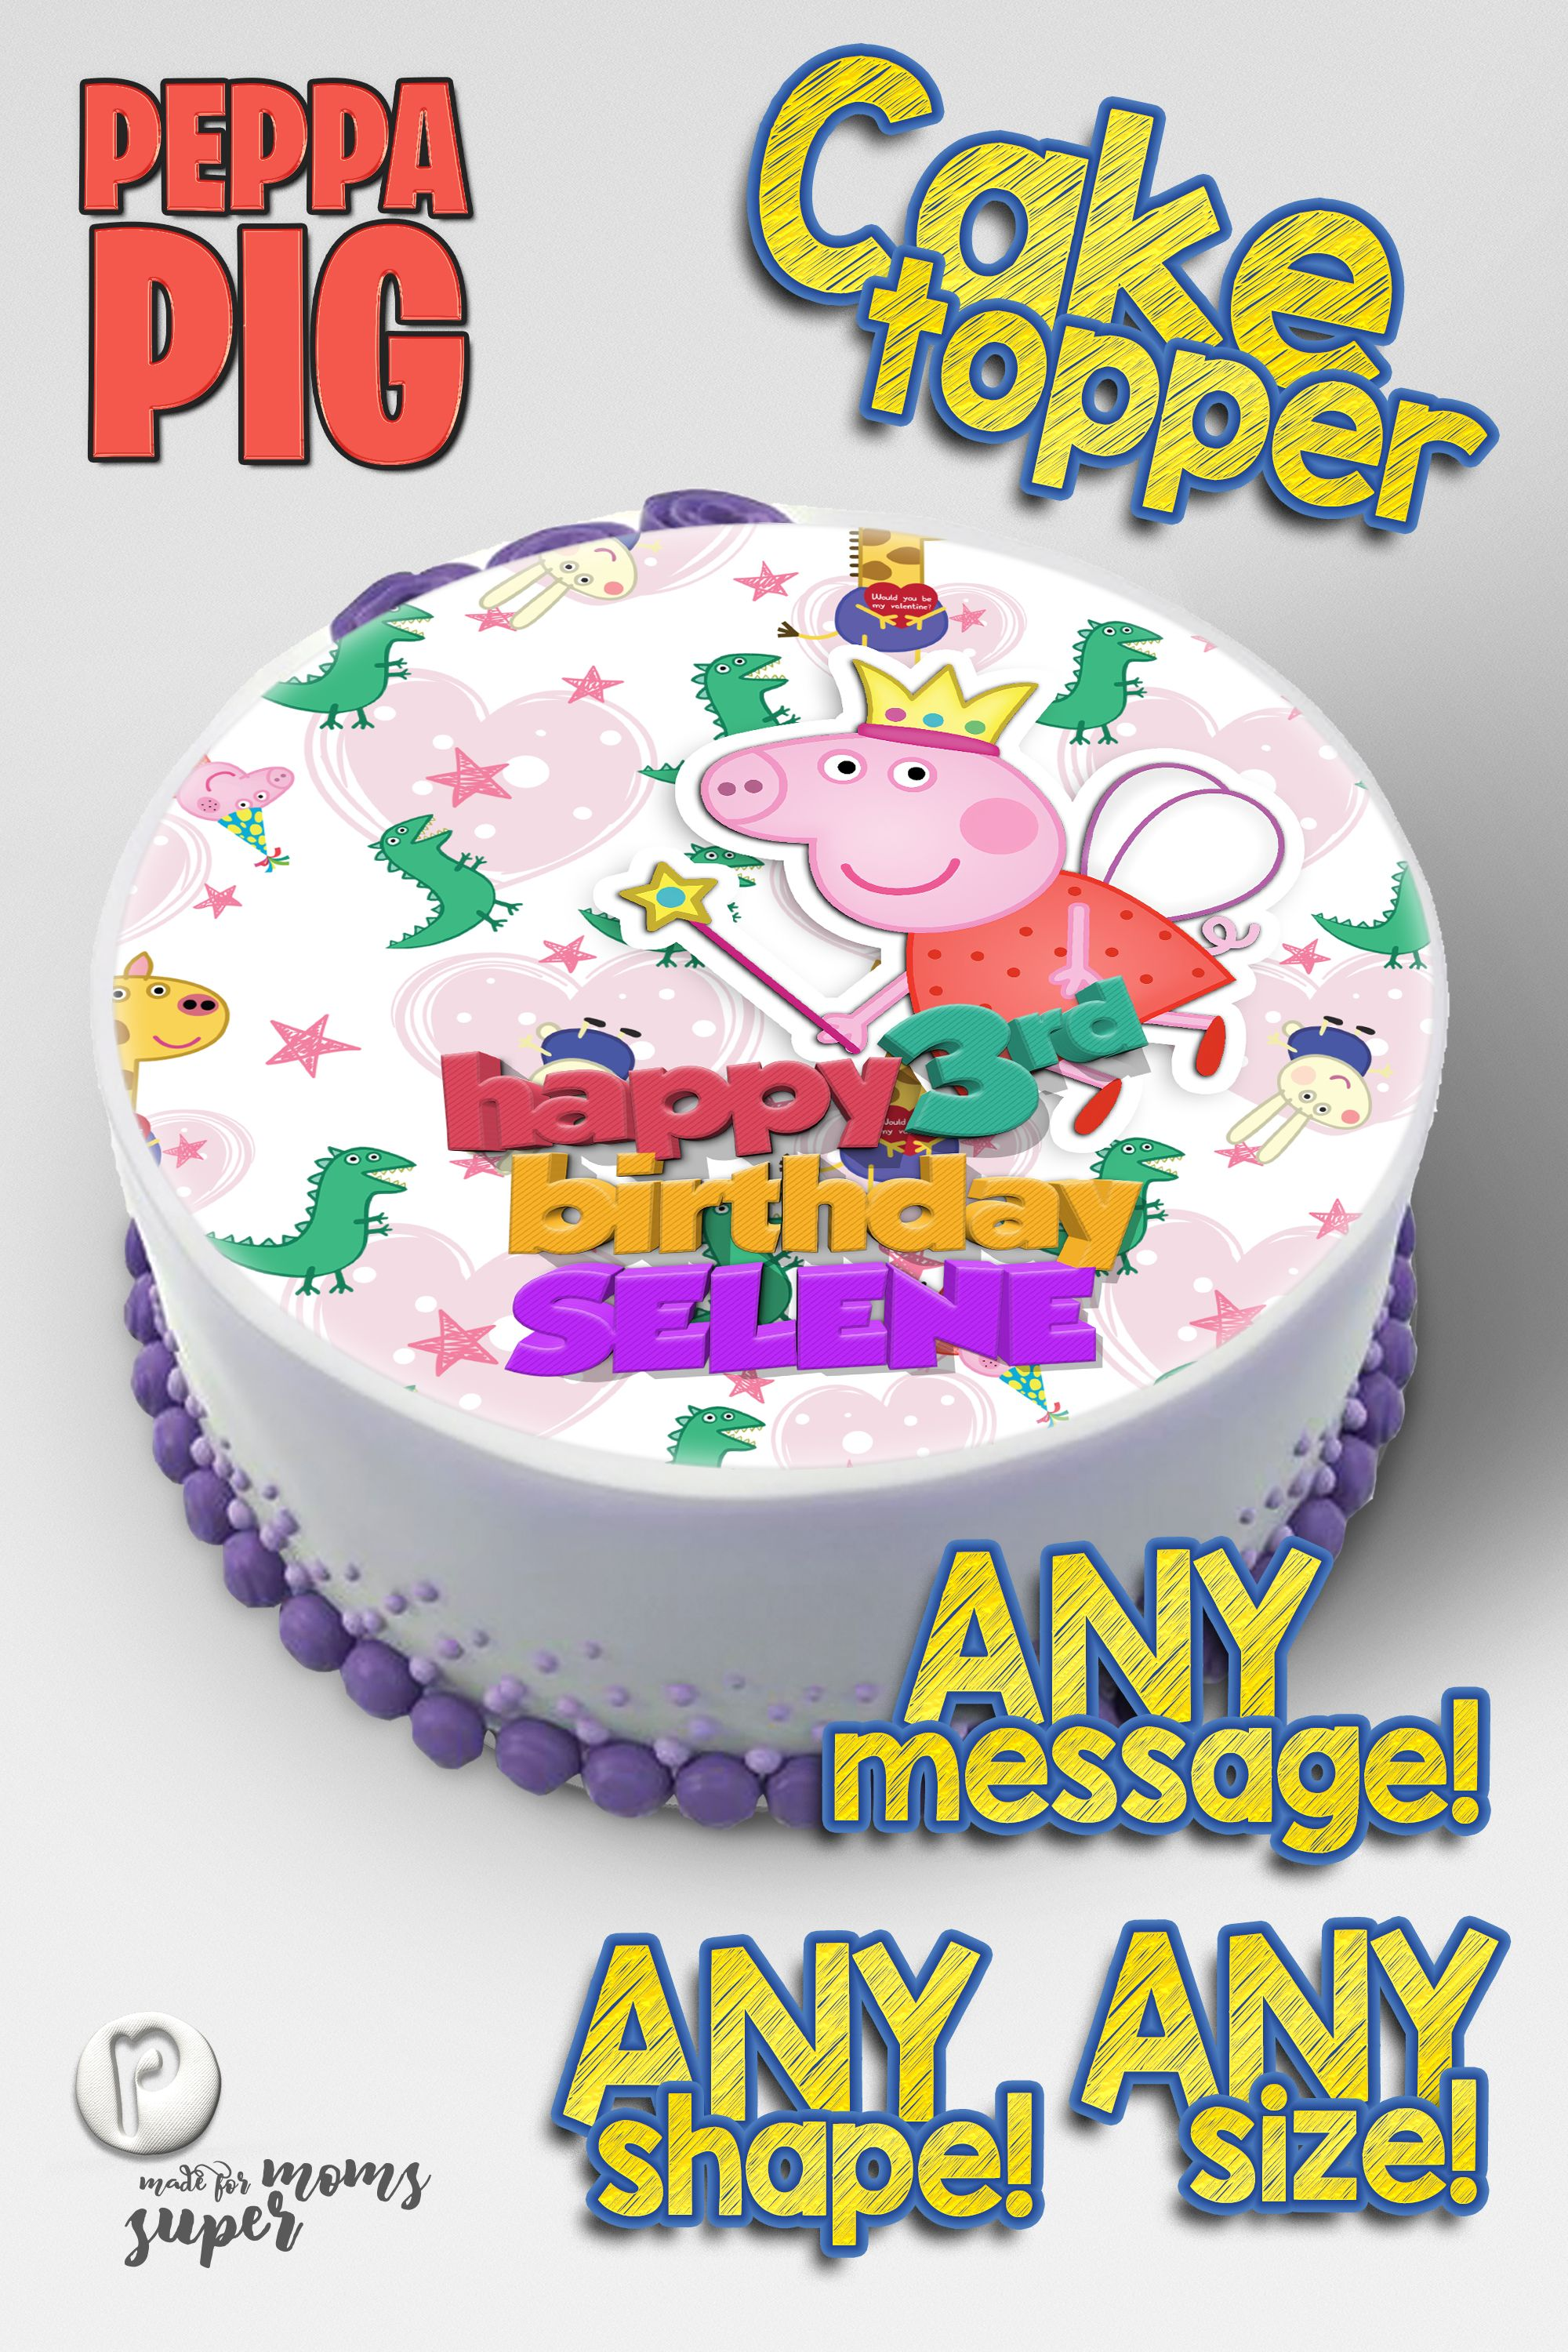 Fantastic Peppa Pig Cake Toppers In 2020 Edible Cake Toppers Cake Toppers Funny Birthday Cards Online Overcheapnameinfo